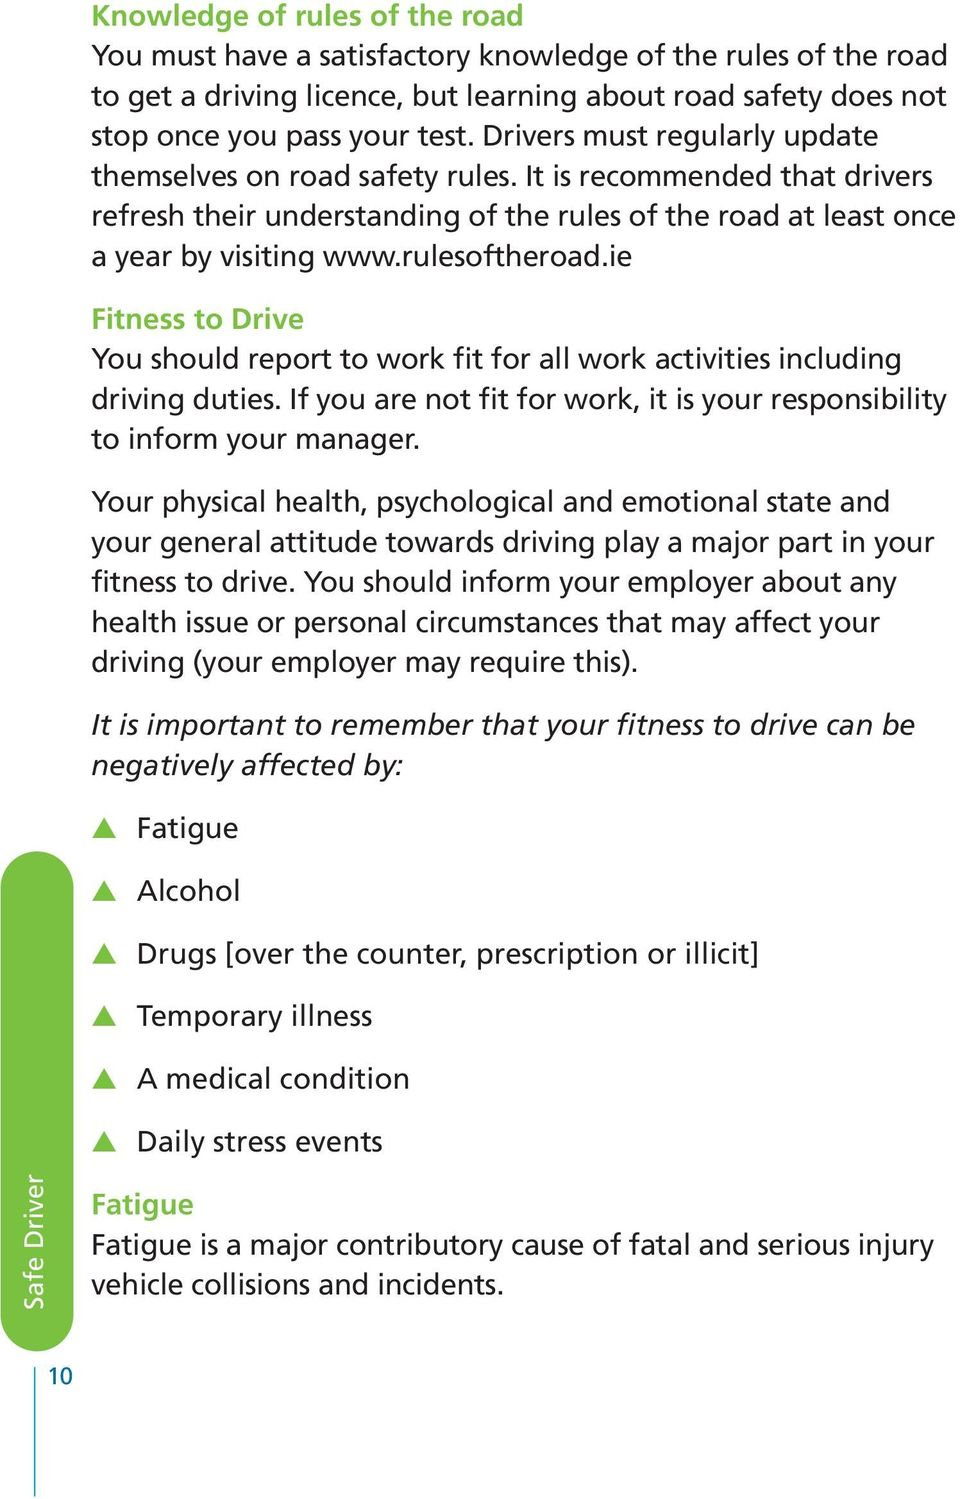 ie Fitness to Drive You should report to work fit for all work activities including driving duties. If you are not fit for work, it is your responsibility to inform your manager.